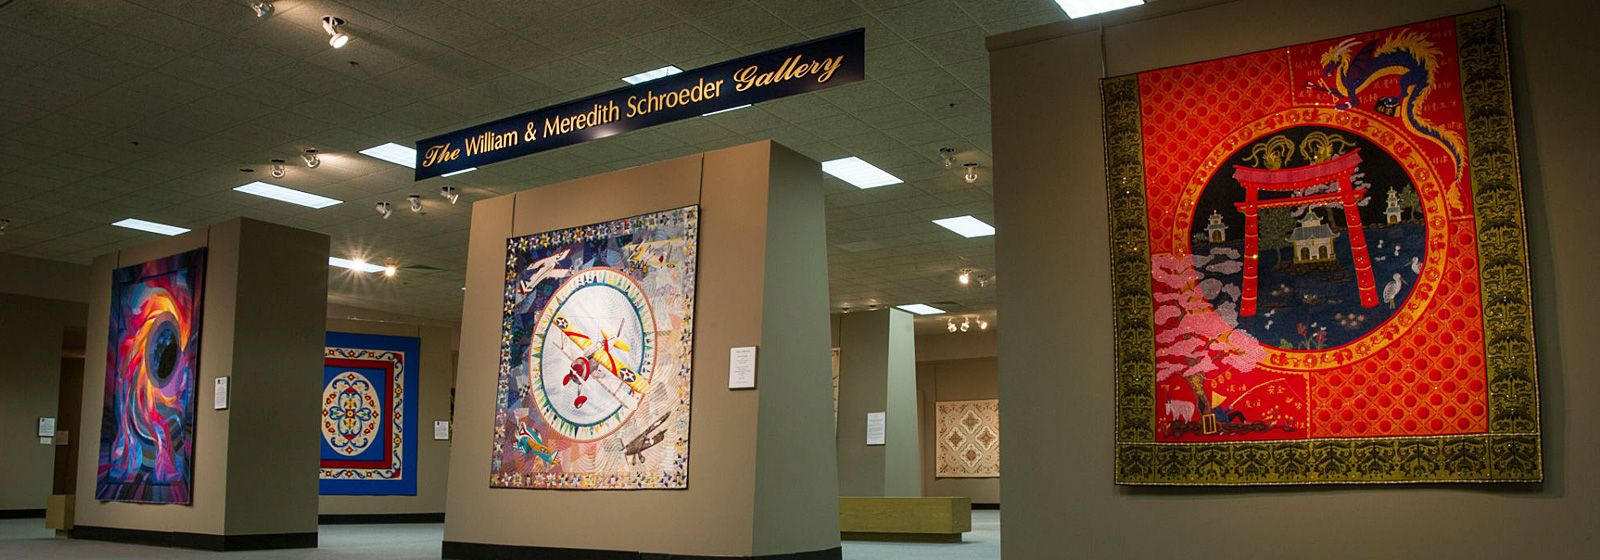 The National Quilt Museum Paducah Ky National Quilt Museum Art Quilts Paducah